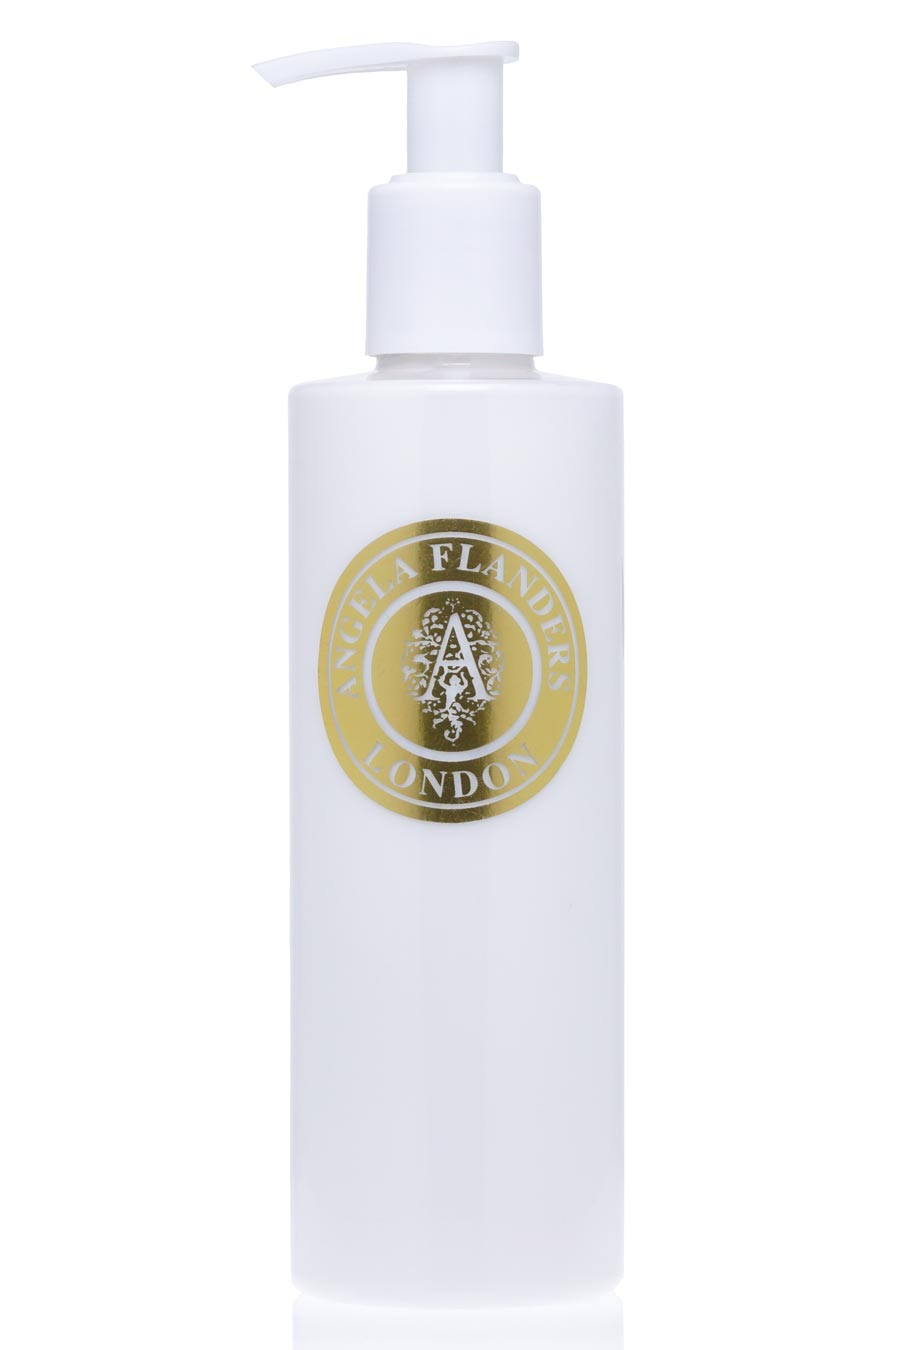 Angela Flanders White Flowers Body Lotion 250ml